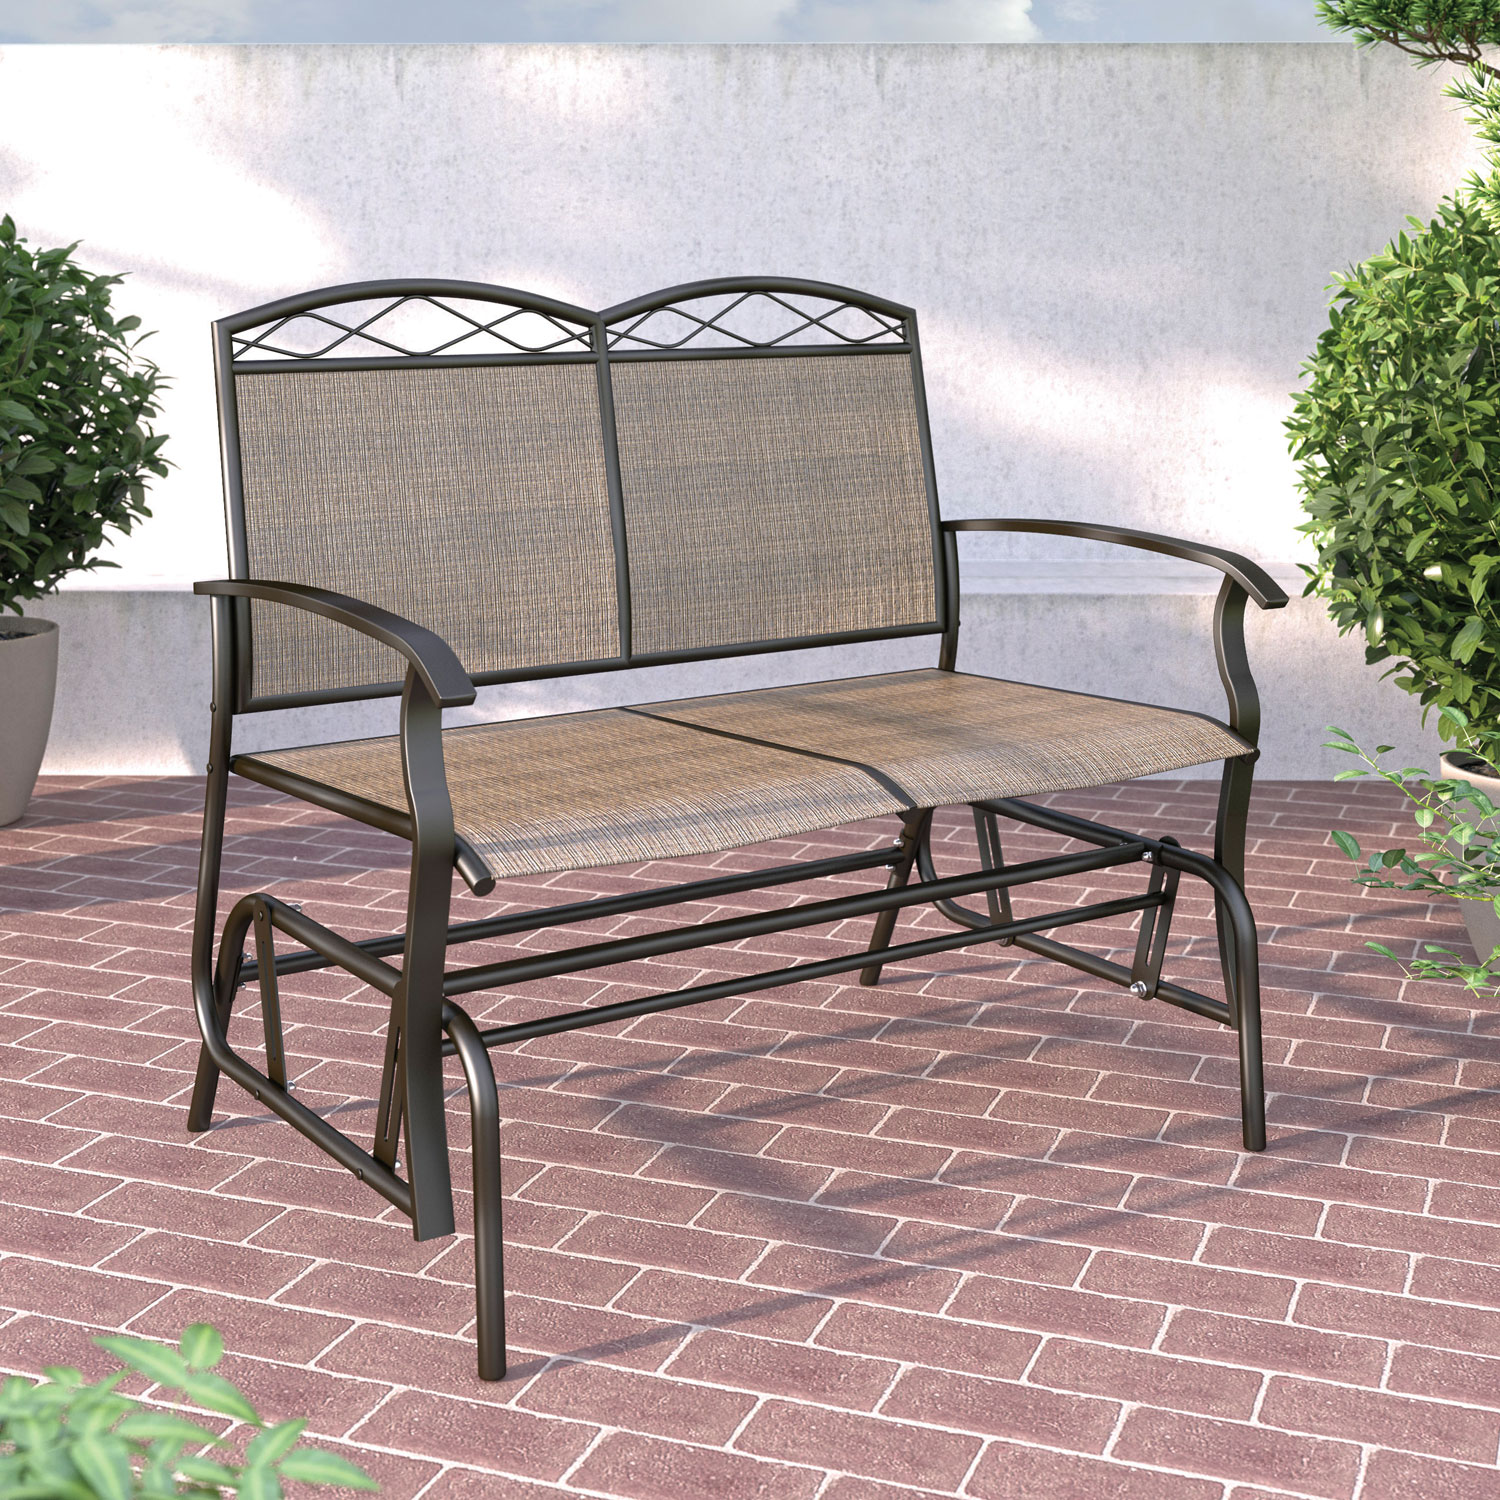 CorLiving Patio Double Glider   Speckled Brown : Outdoor Chairs   Best Buy  Canada